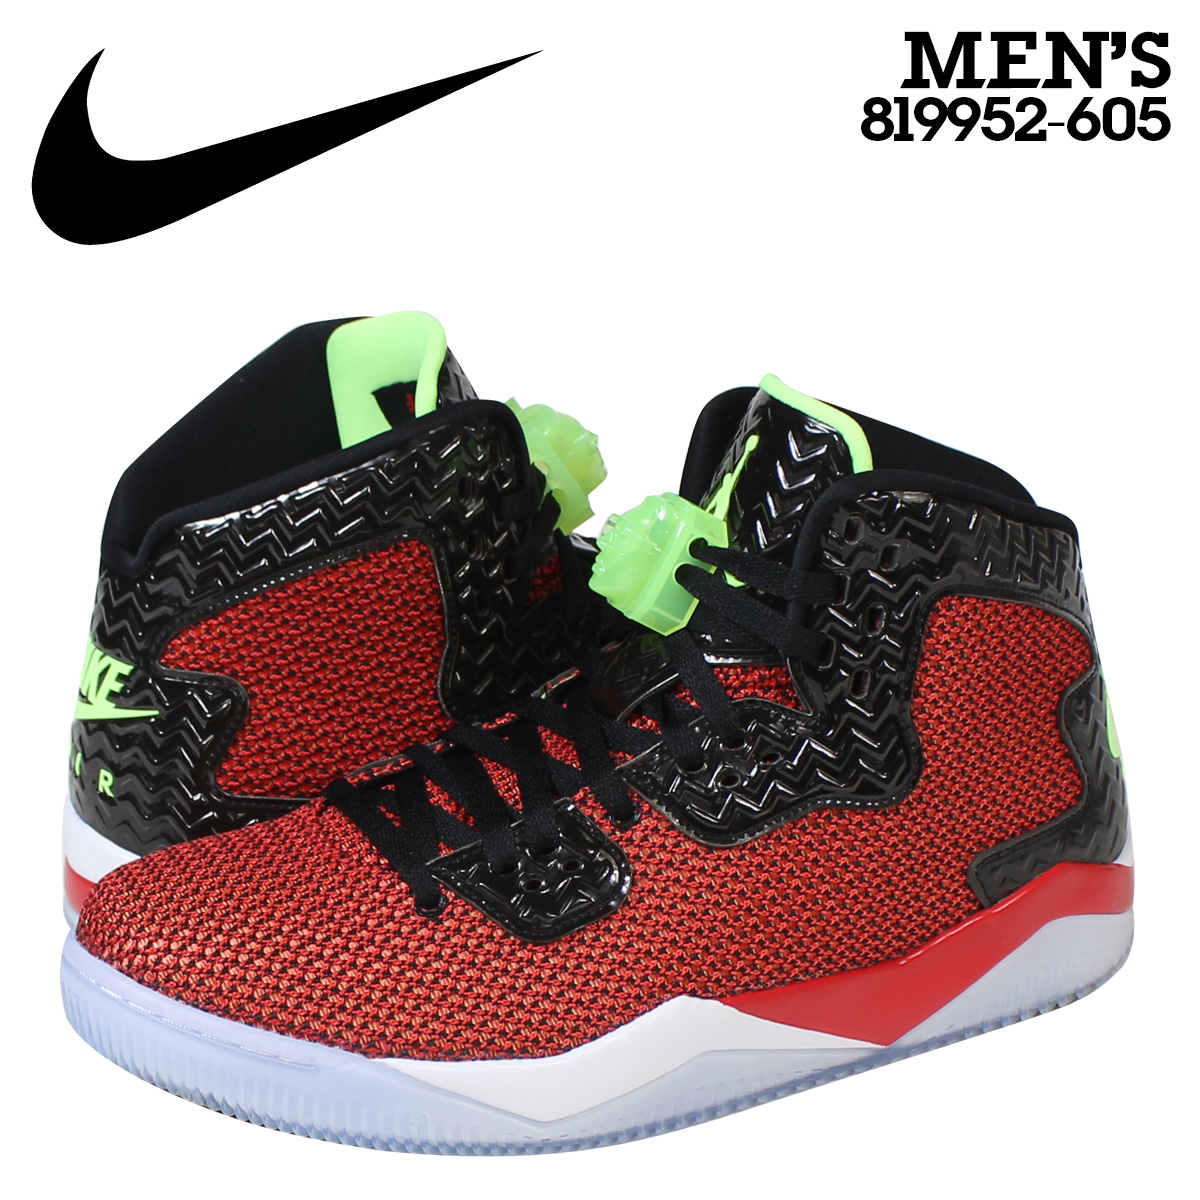 Sneak Online Shop Nike Nike Air Jordan Sneakers Air Jordan Spike